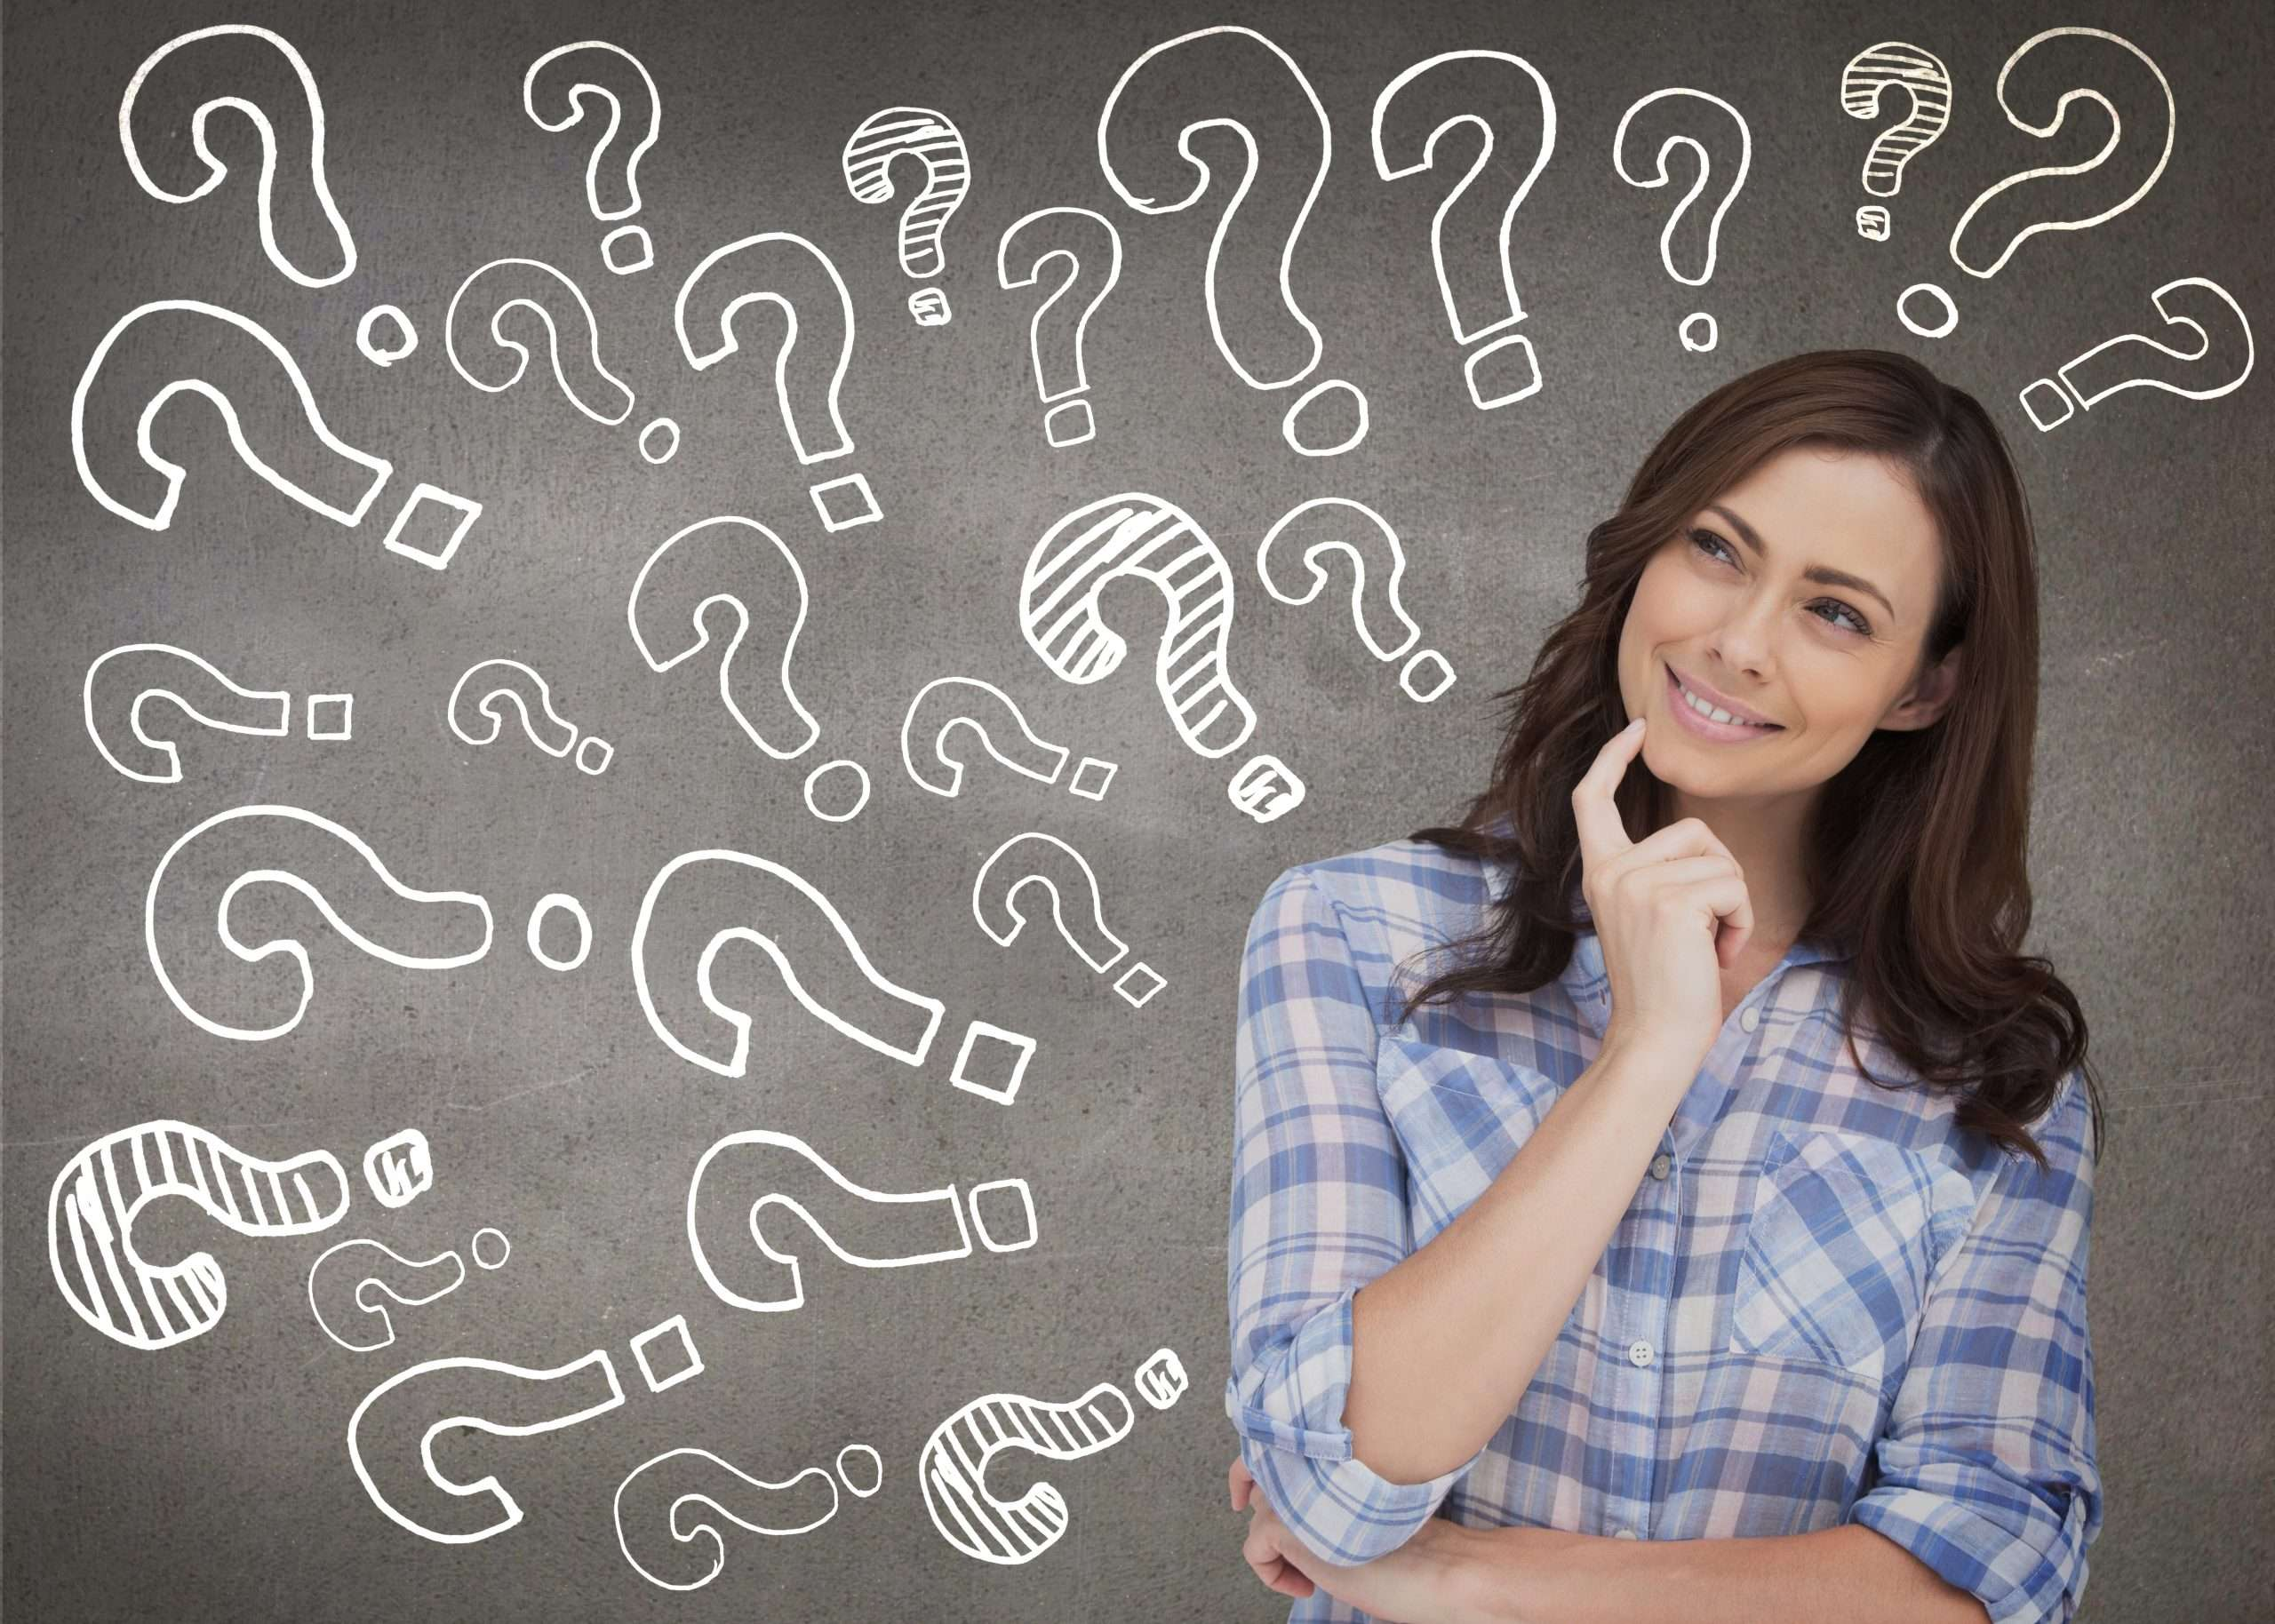 A person looks thoughtfully at a series of question marks while thinking of a name for a business